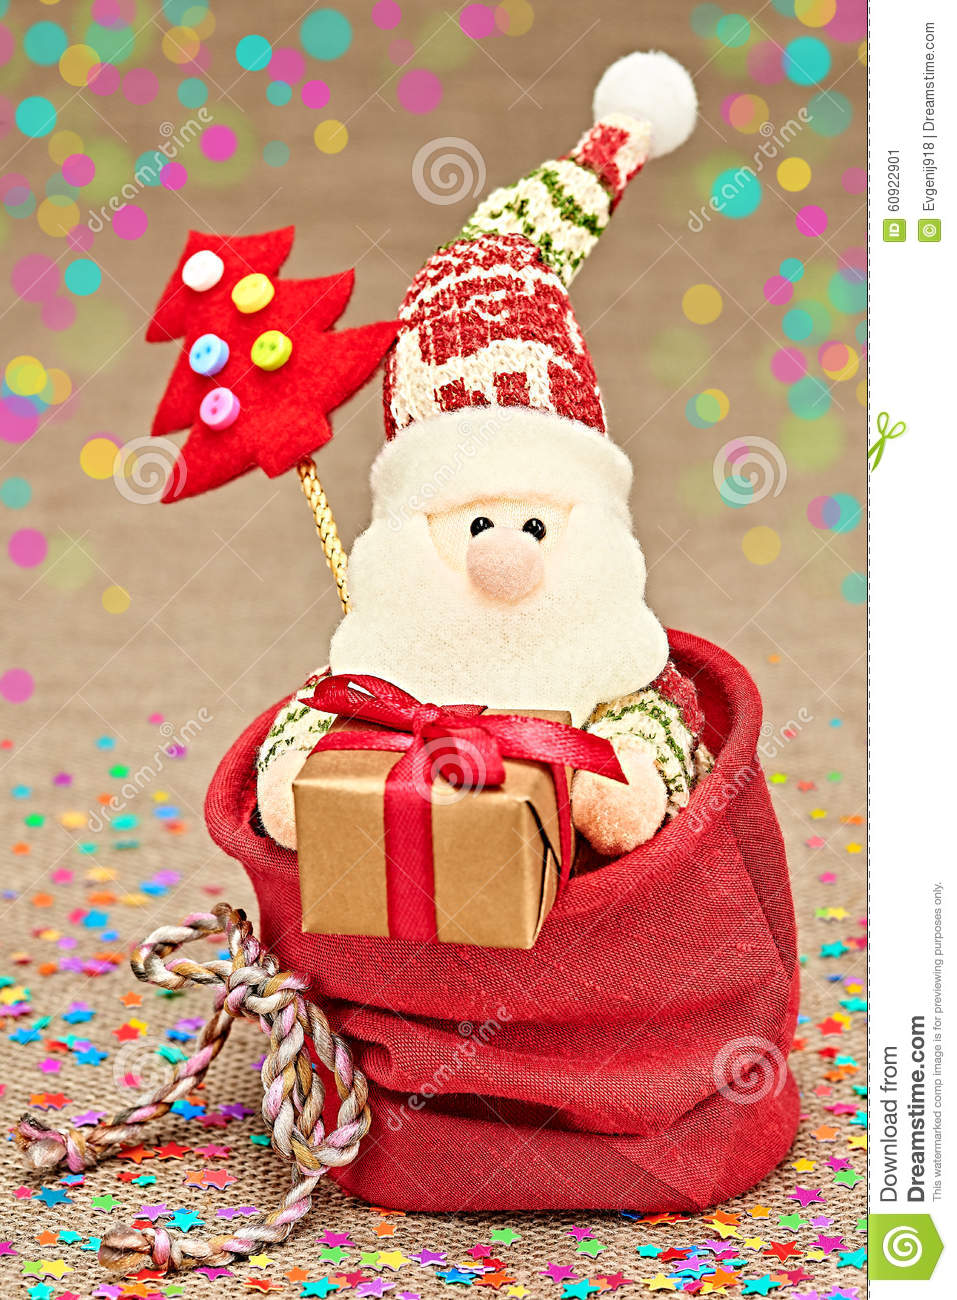 New Year 2016. Merry Christmas. Santa Claus and